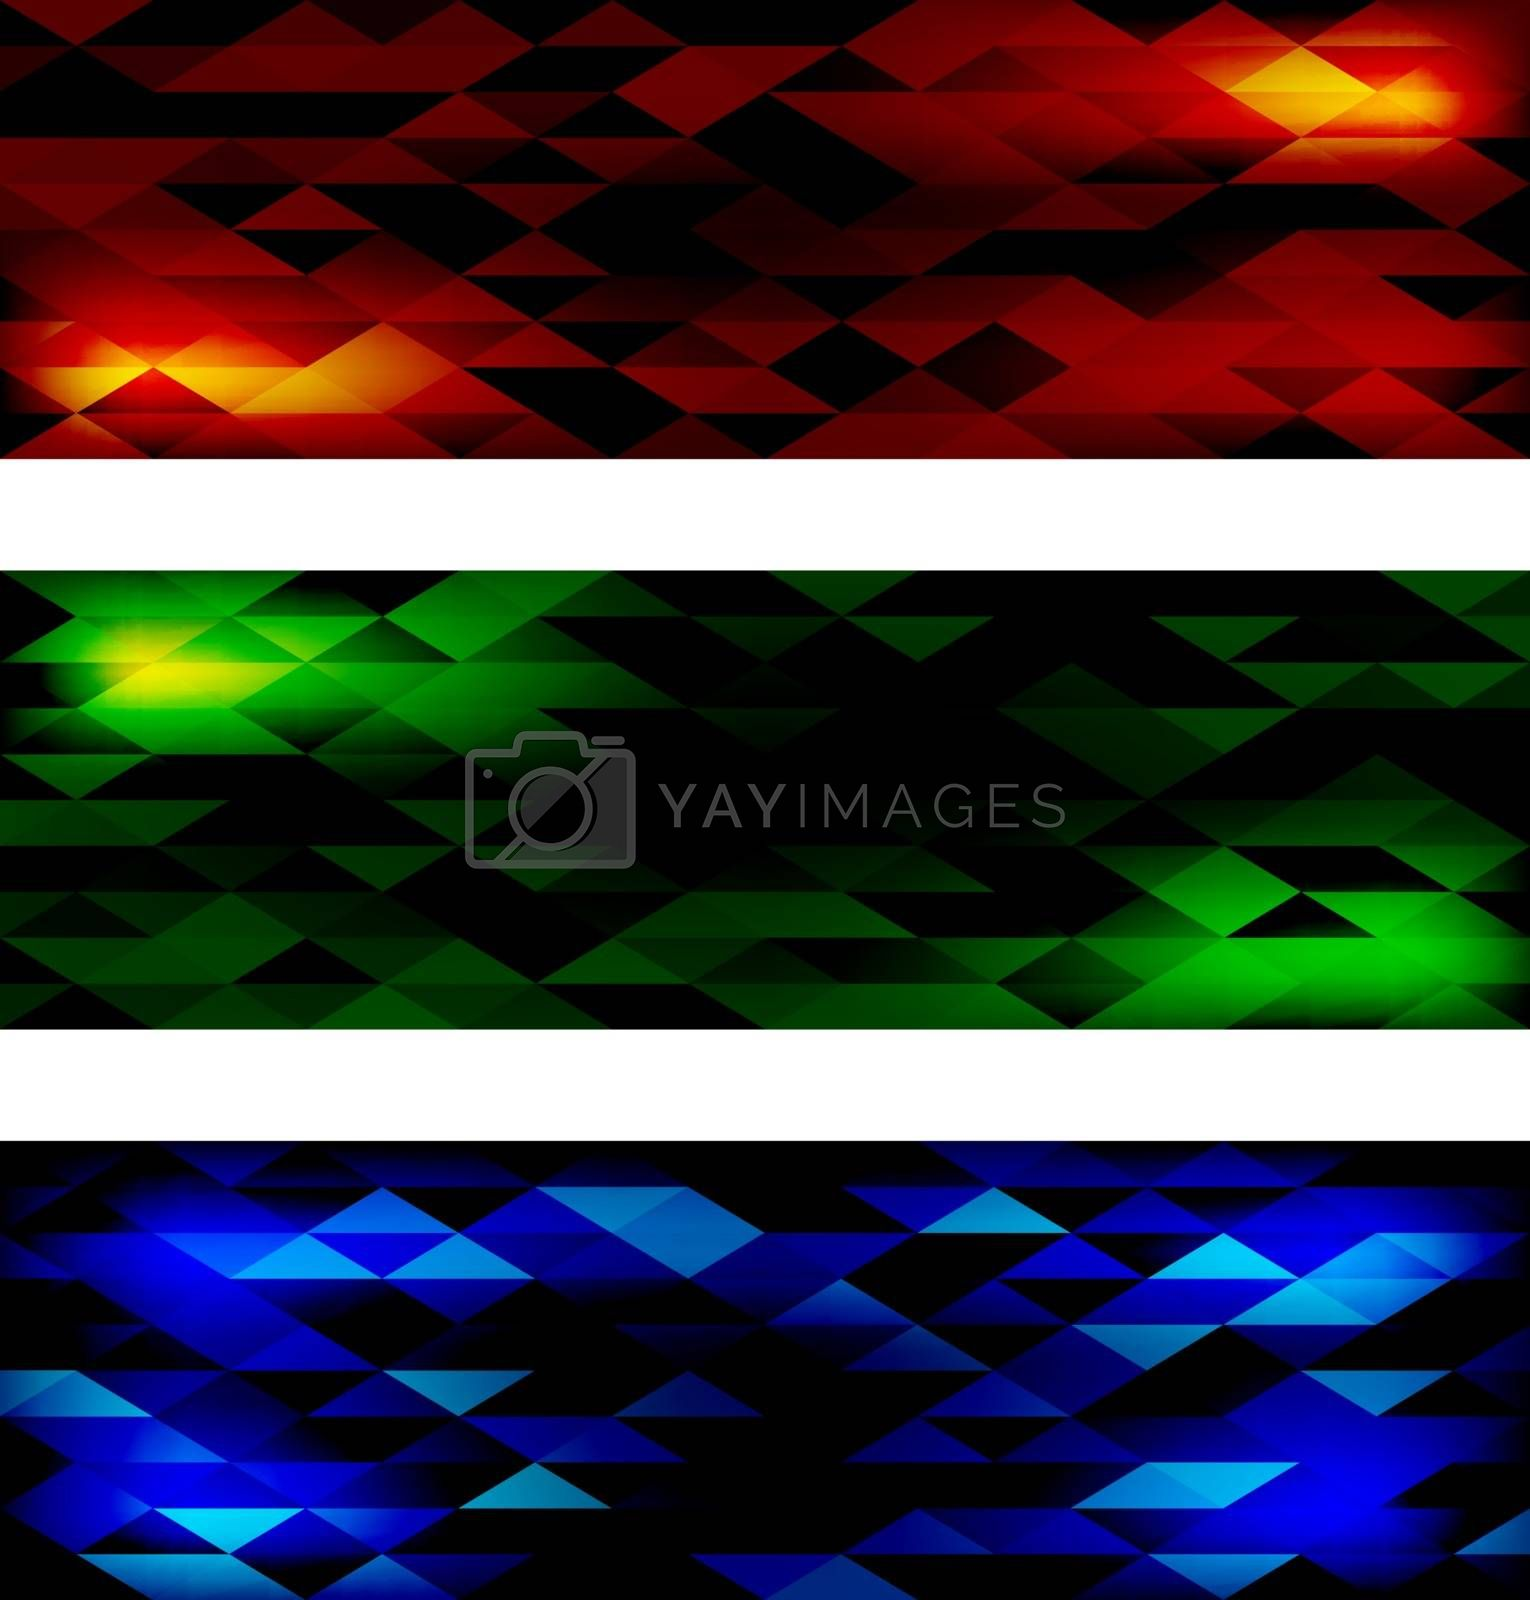 Creative Triangular Polygonal Colorful Mosaic Banners. Set of three different color themes, red, green and blue. Vector illustration